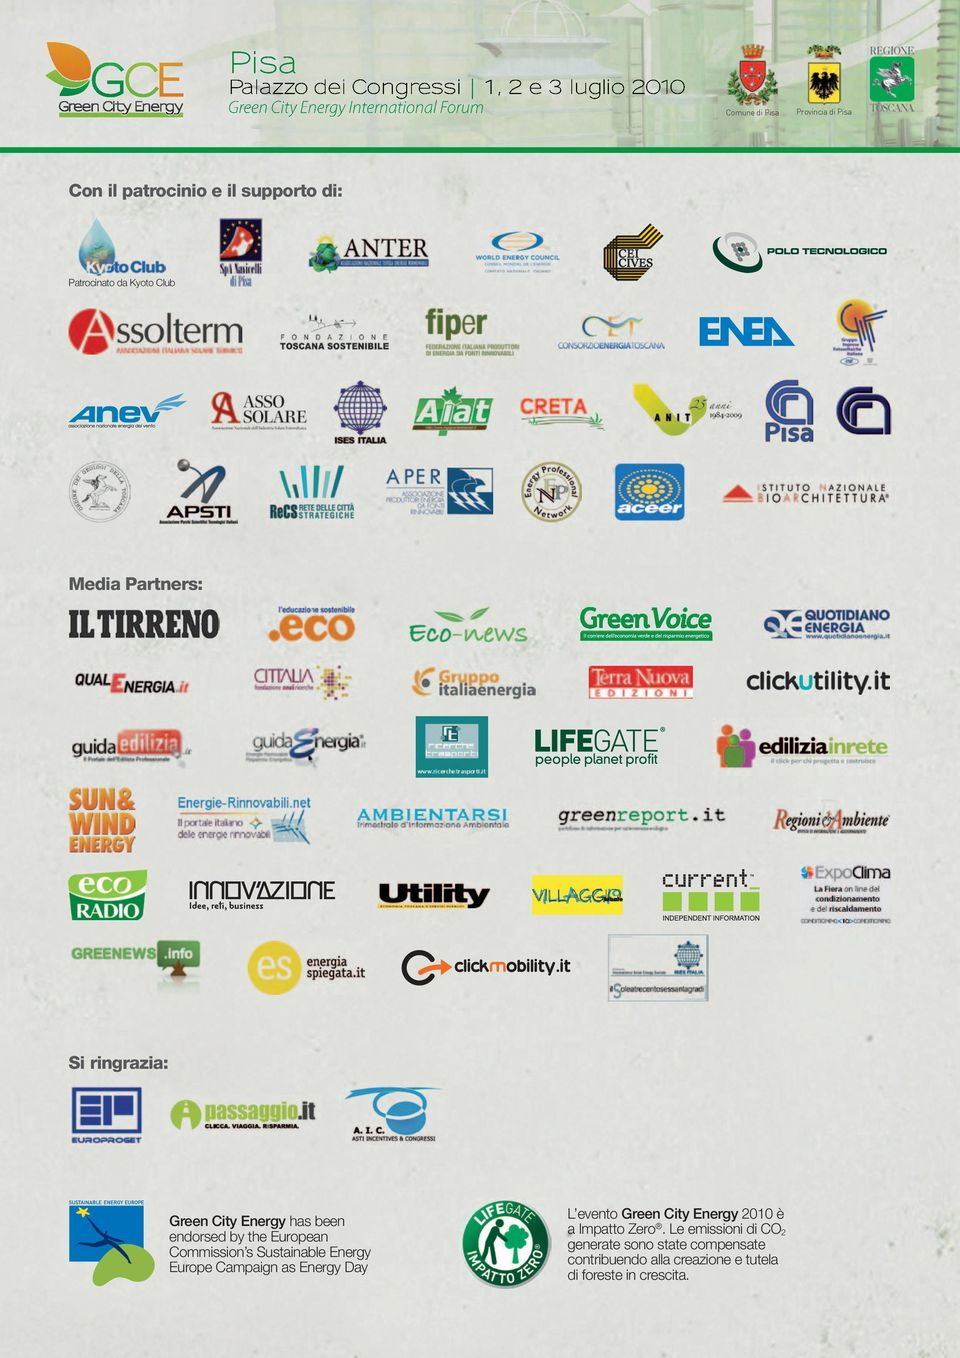 Campaign as Energy Day L evento Green City Energy 2010 è a Impatto Zero.